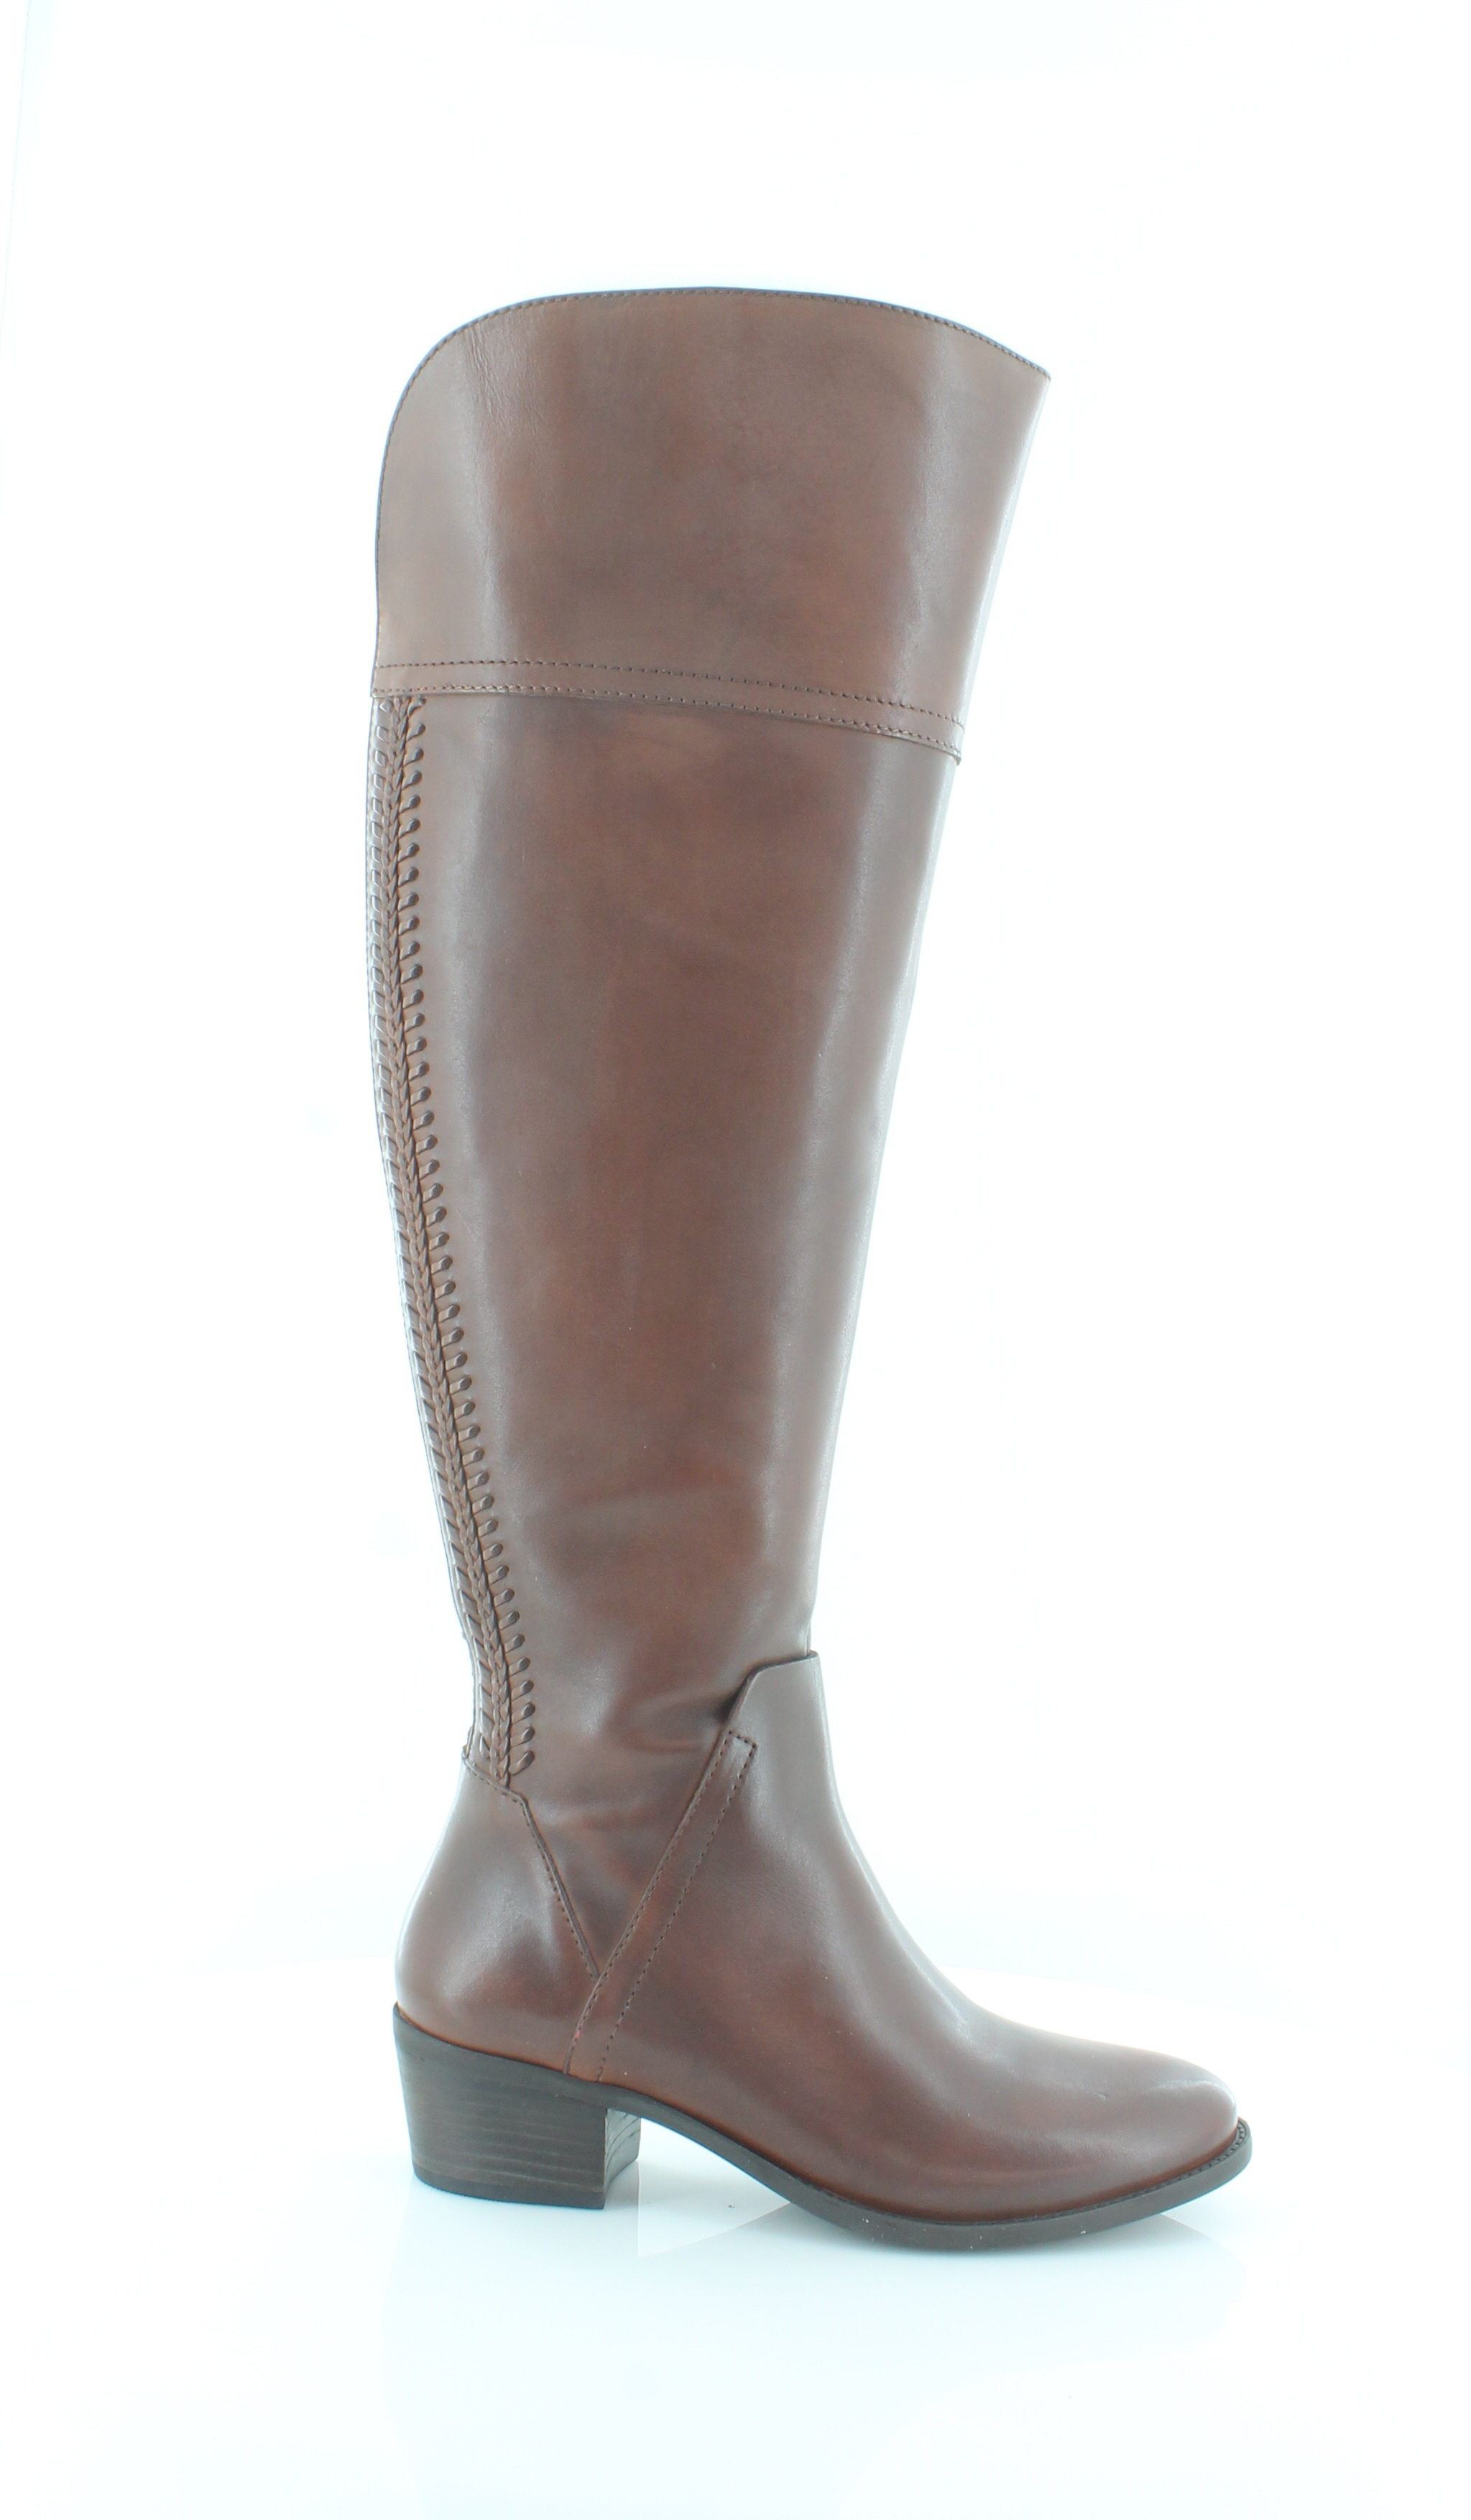 2fca8200b636 Vince Camuto New Brenda Riding Boot Brown Womens Shoes Size 7 M Boots MSRP   198